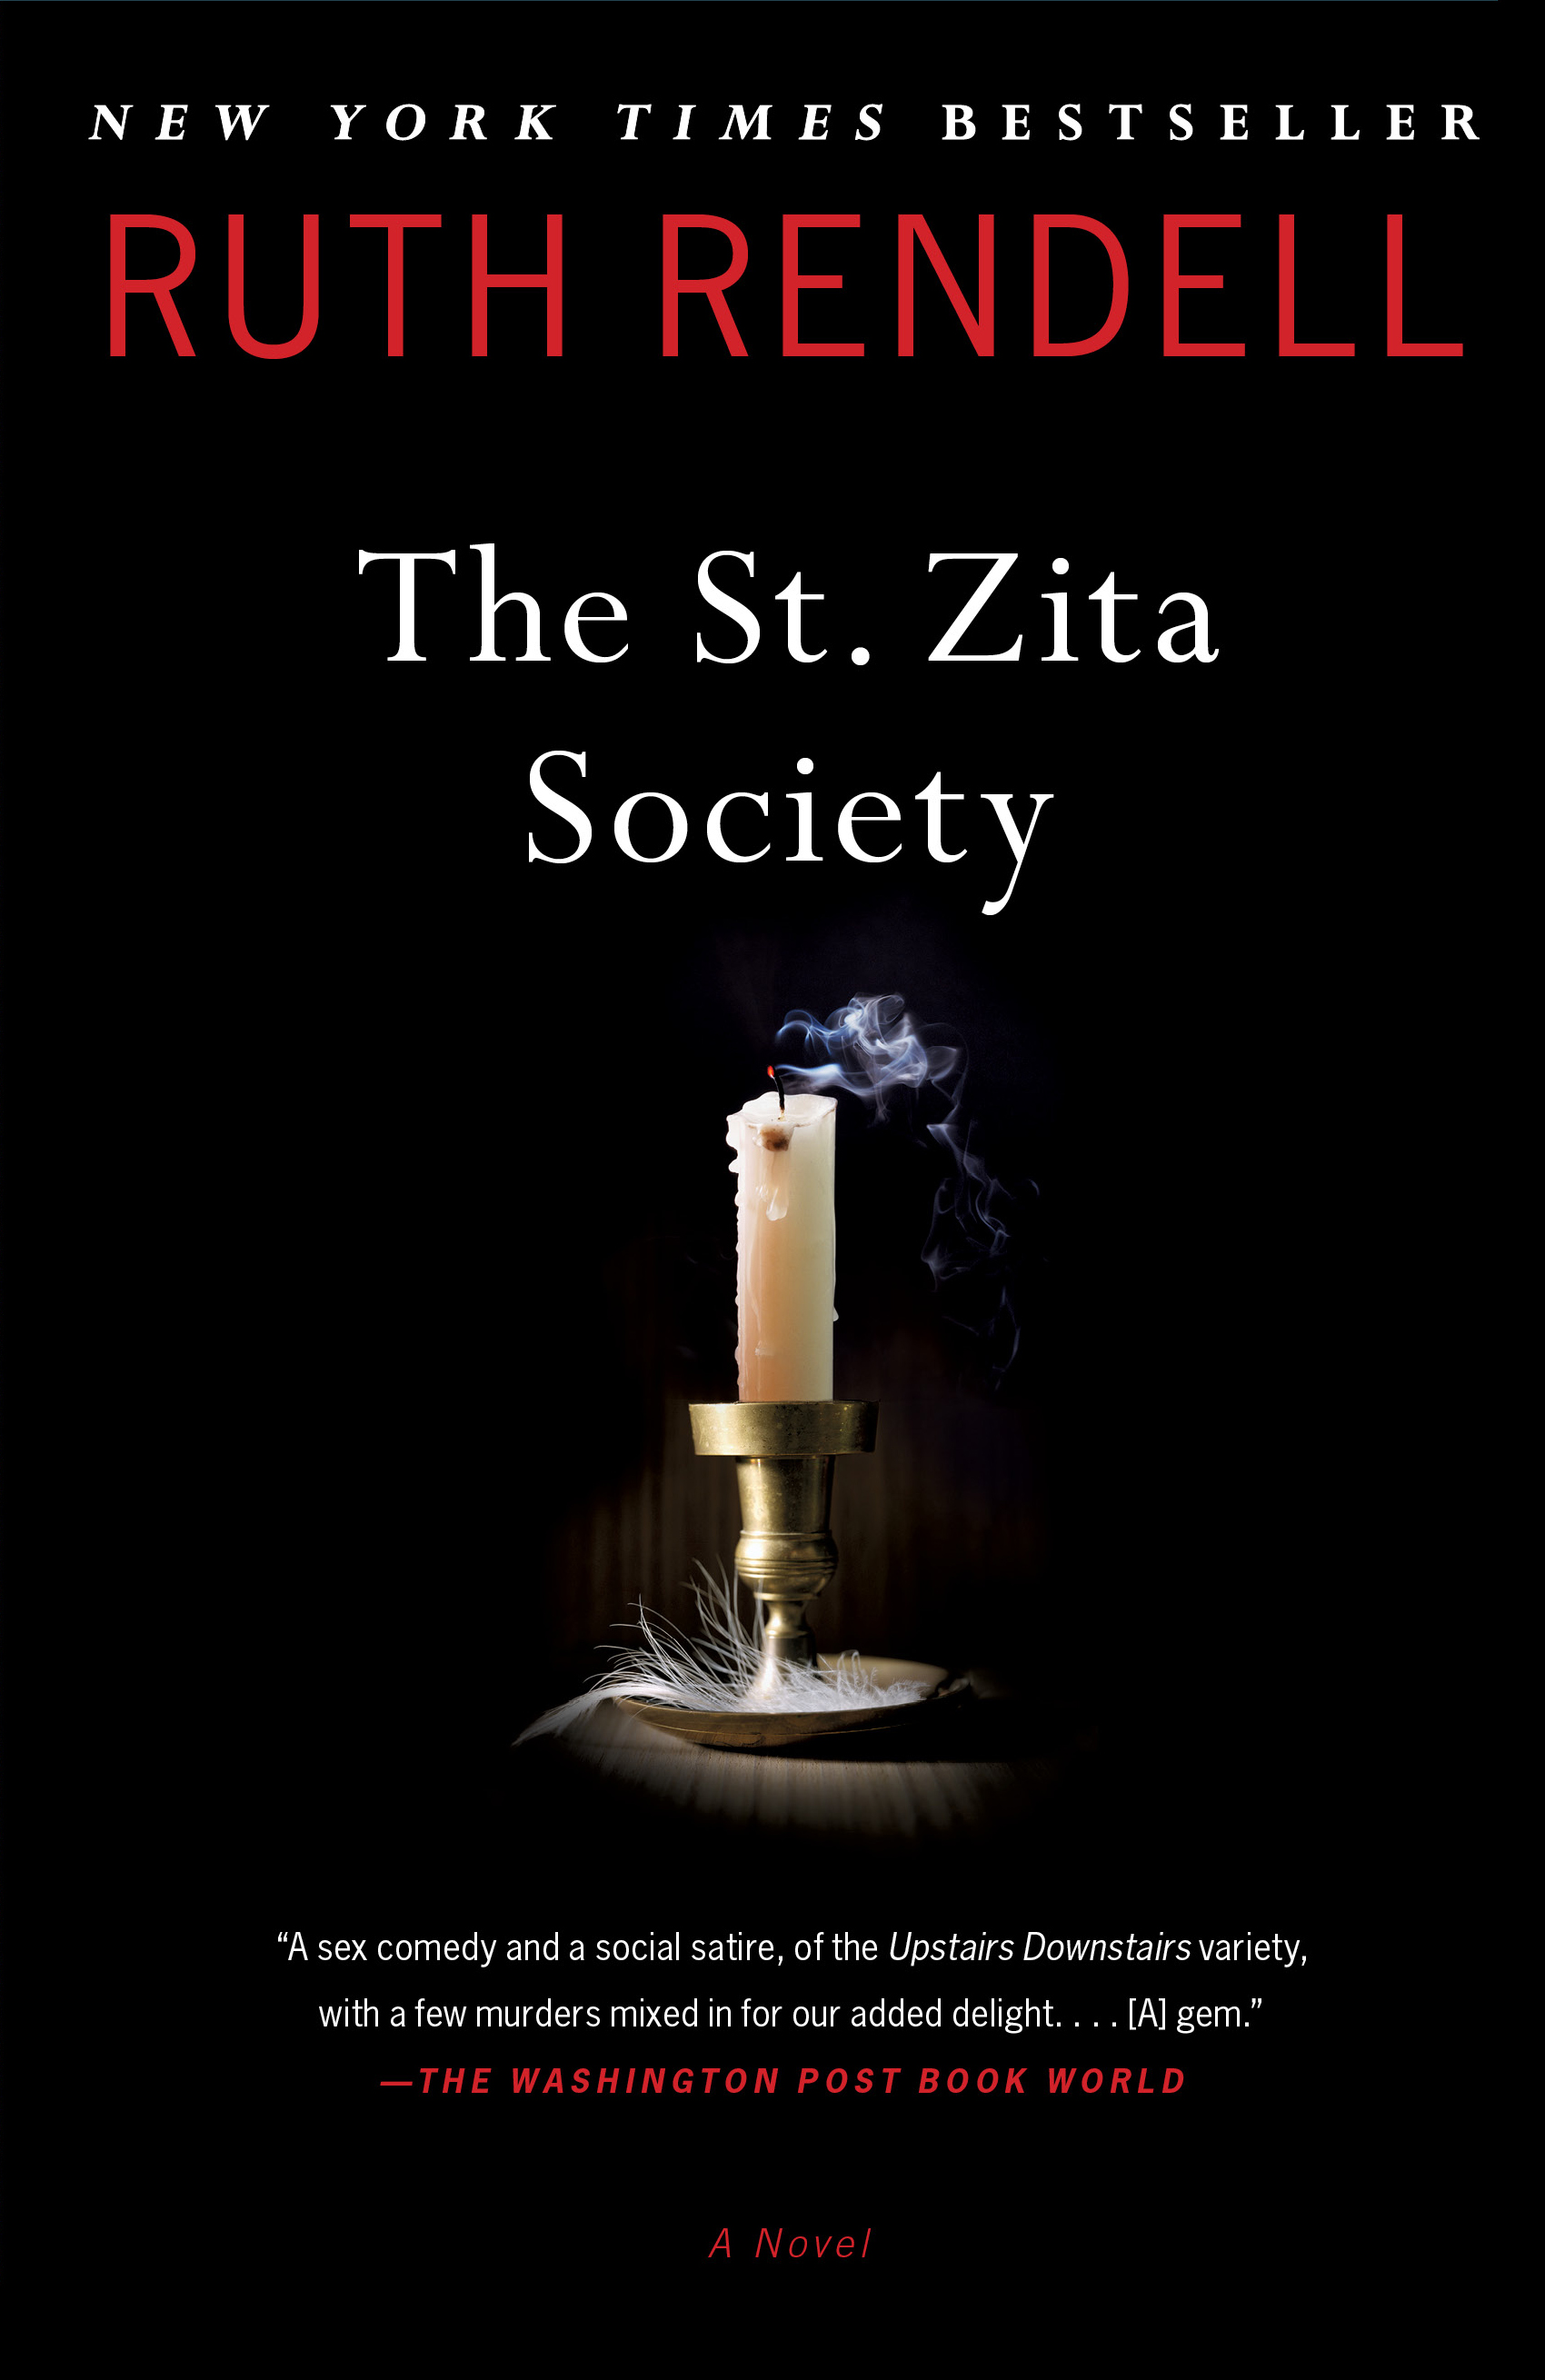 The St. Zita Society